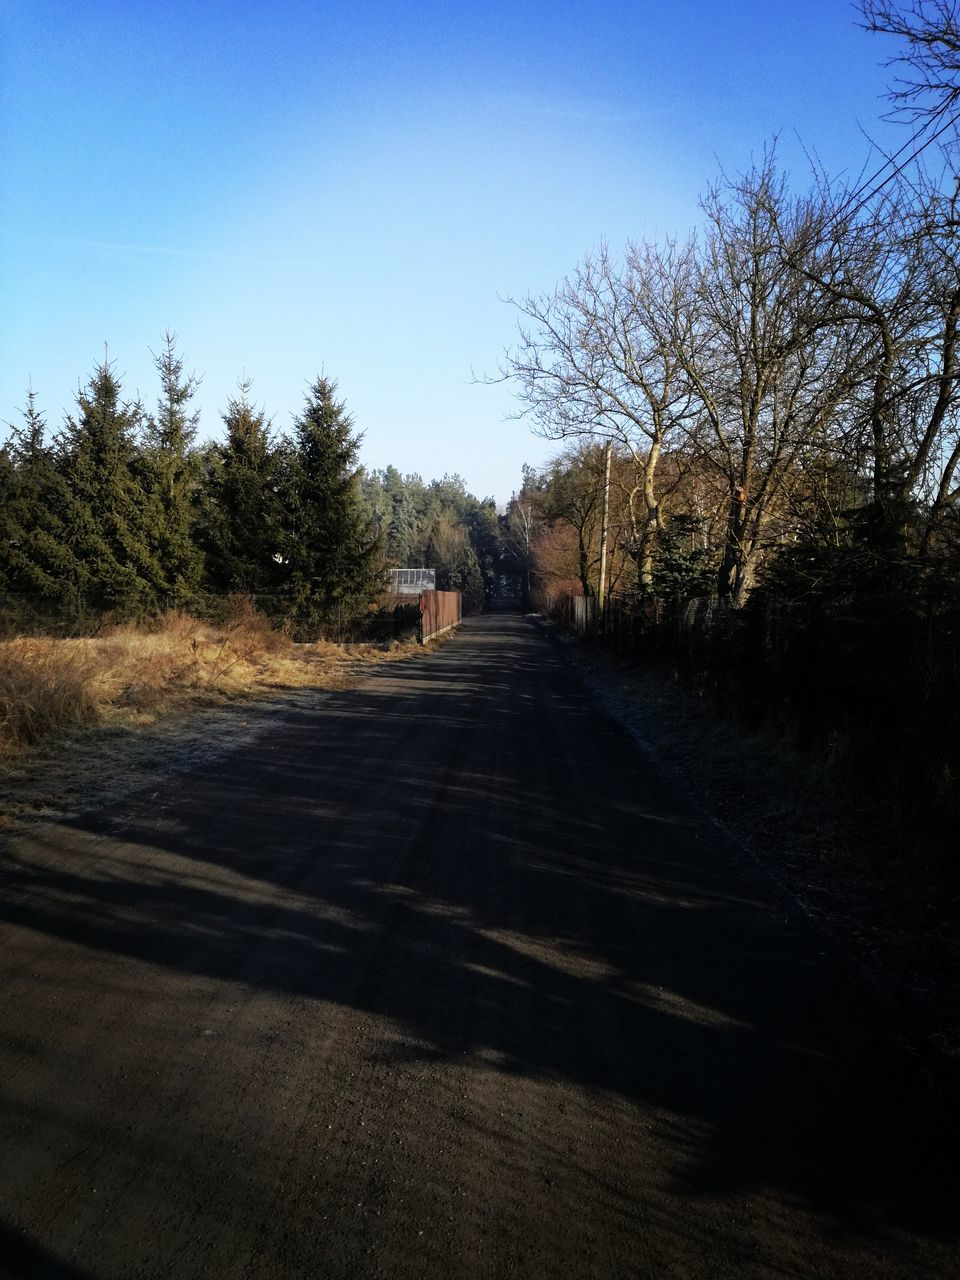 tree, the way forward, clear sky, road, sunlight, day, nature, outdoors, shadow, tranquility, no people, landscape, sky